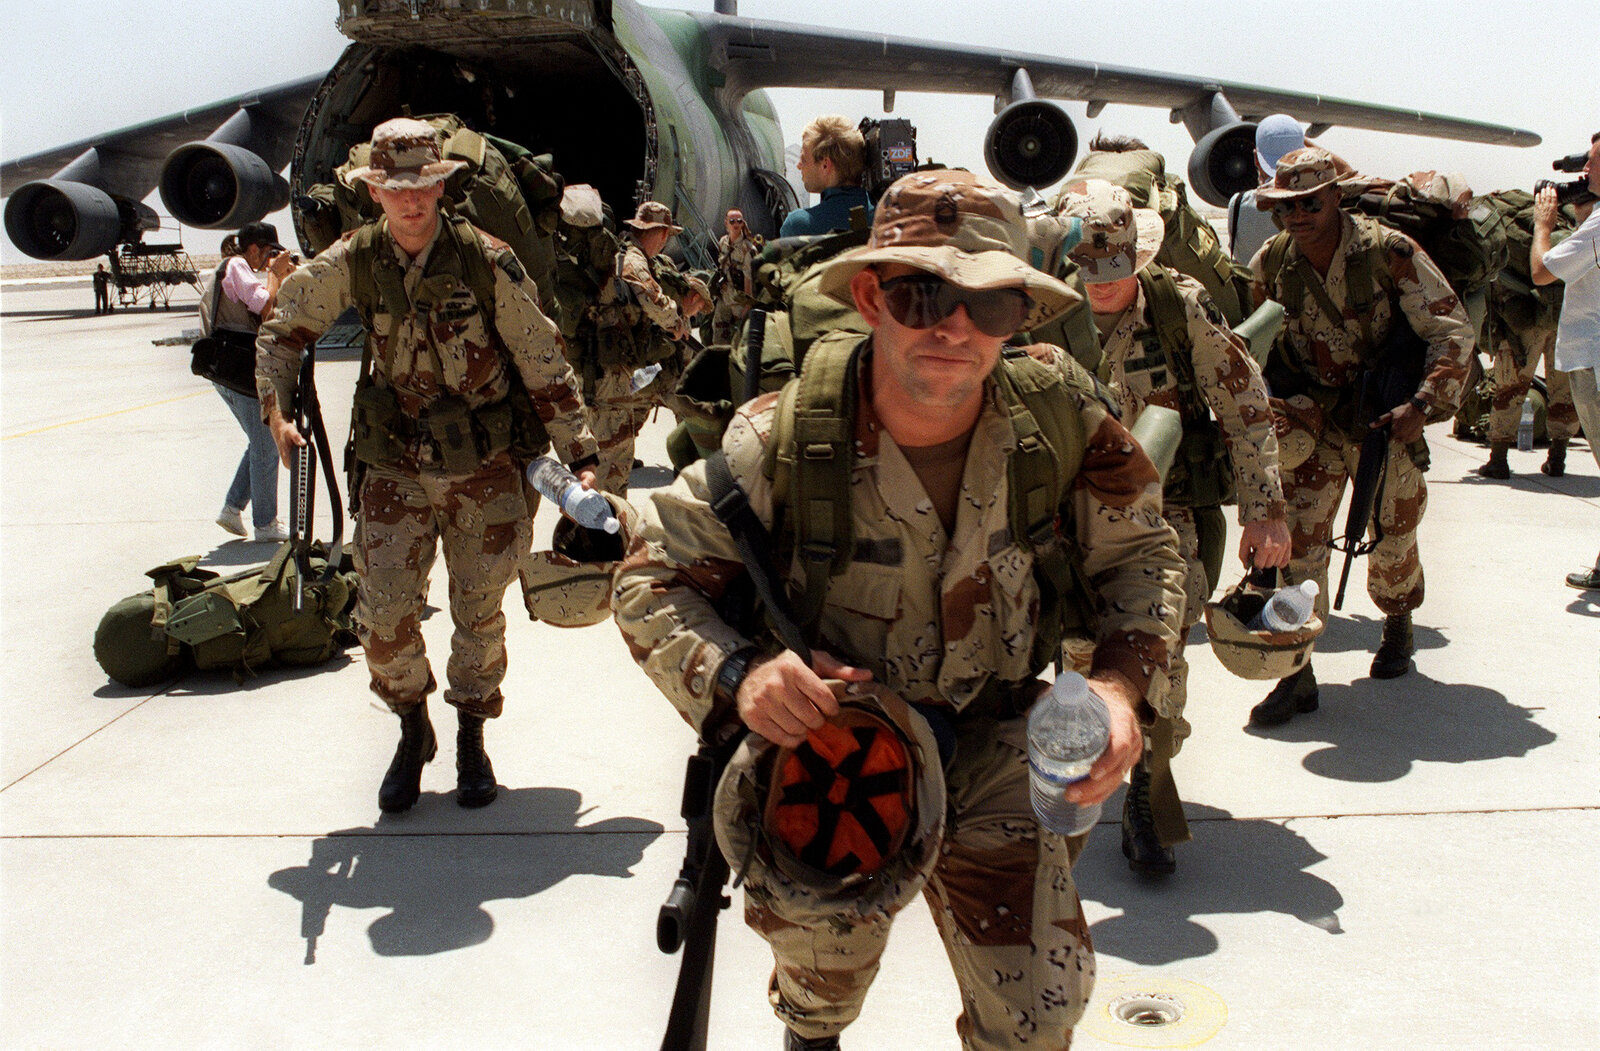 U.S. Marines arrive at Saudi Arabia's Dhahran Air Base on Aug. 21, 1990. The U.S. began a buildup in the region just days after Iraq invaded Kuwait on Aug. 2 of that year. The U.S. military has been active in Iraq virtually nonstop for the past quarter-century.